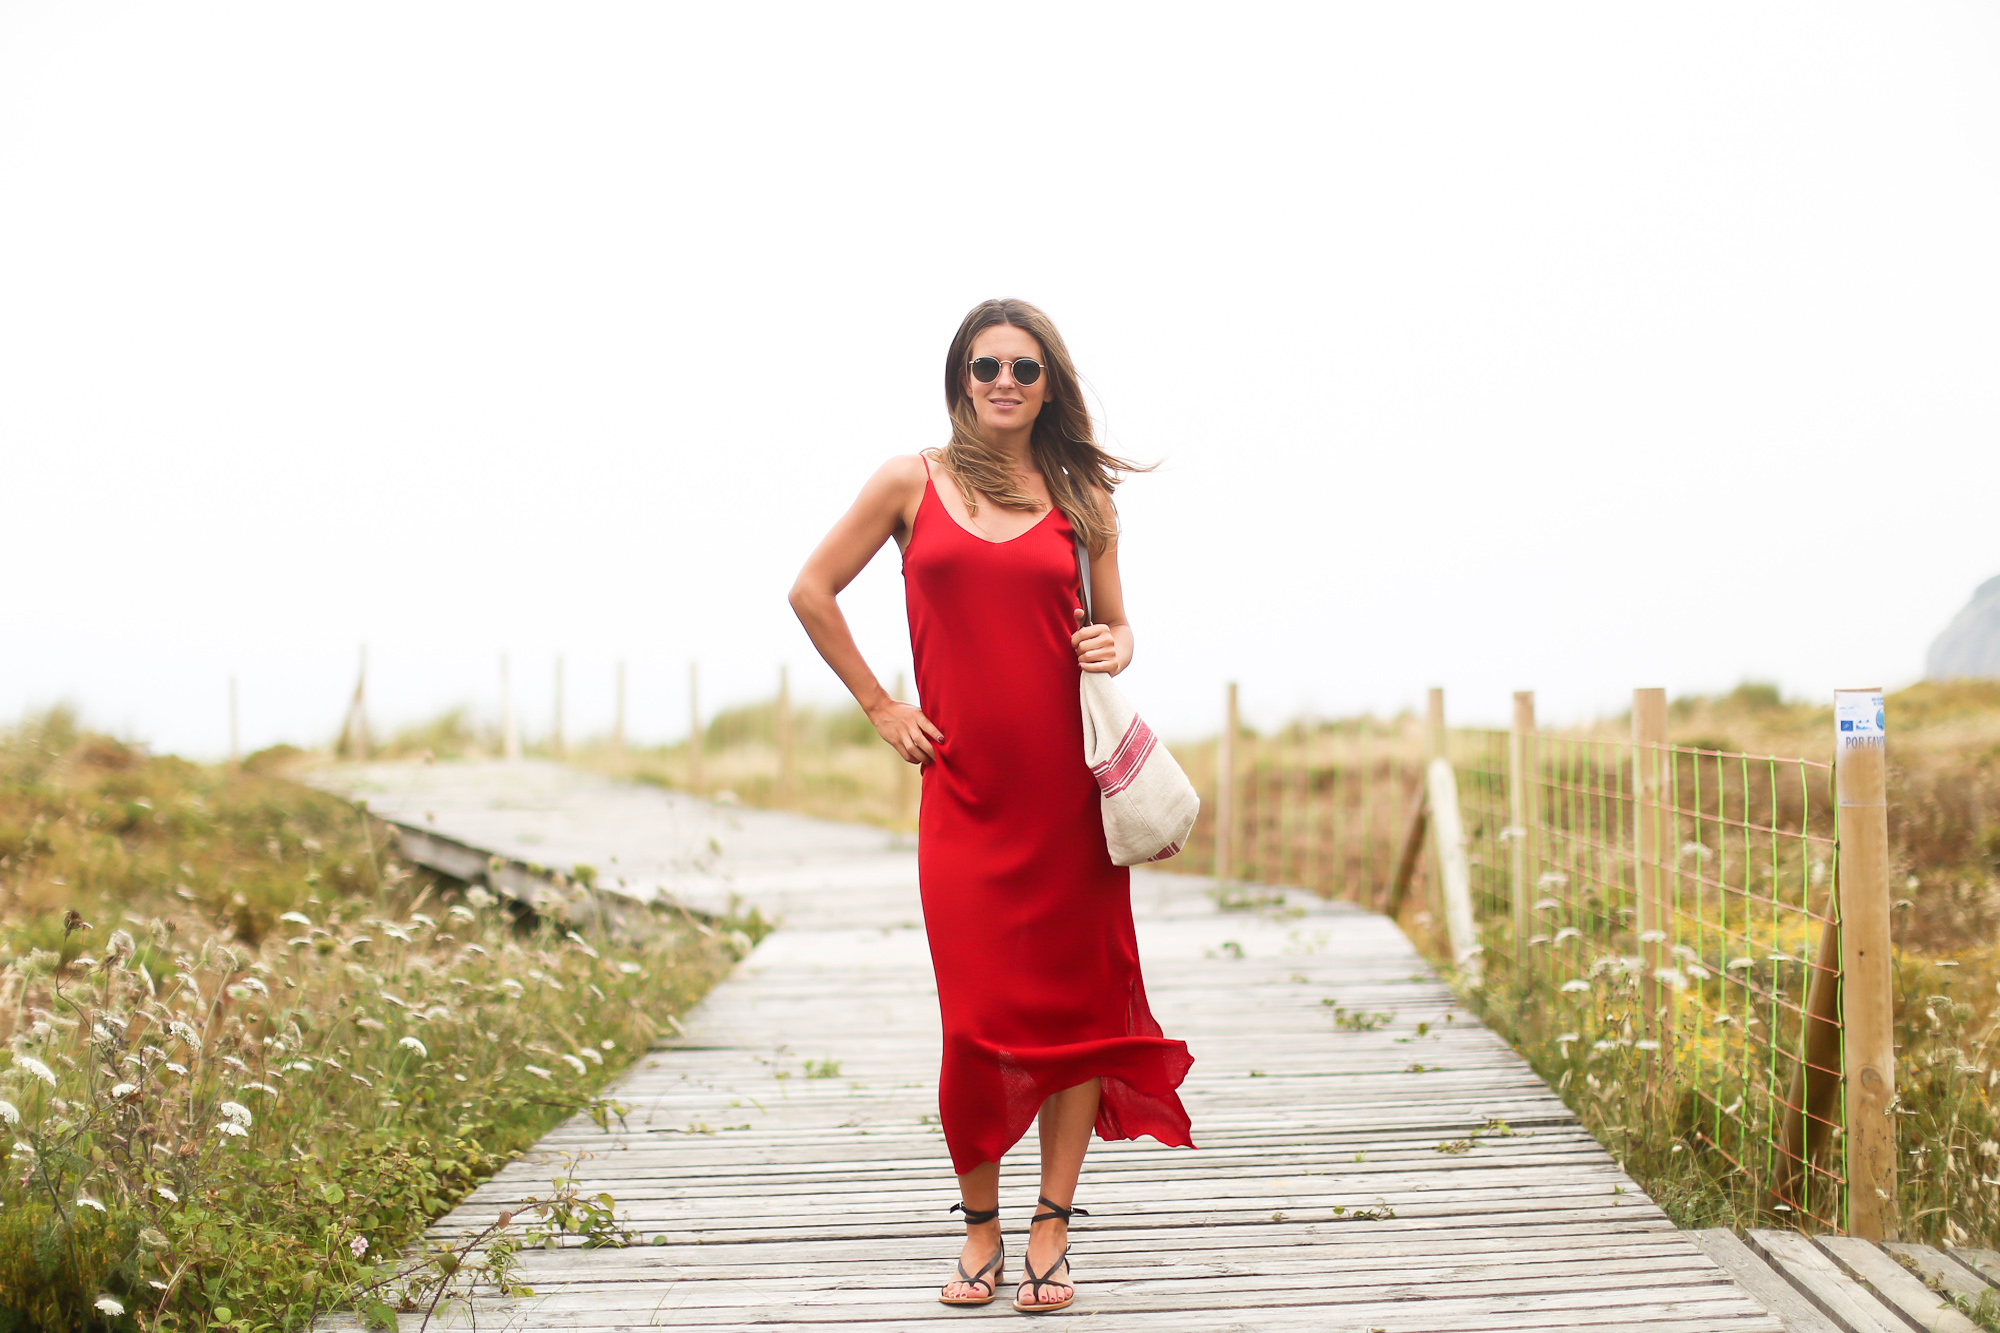 Clochet_streetstyle_zara_limitededition_red_knitdress_artemisia_roman_sandals_maternity_pregnantstyle